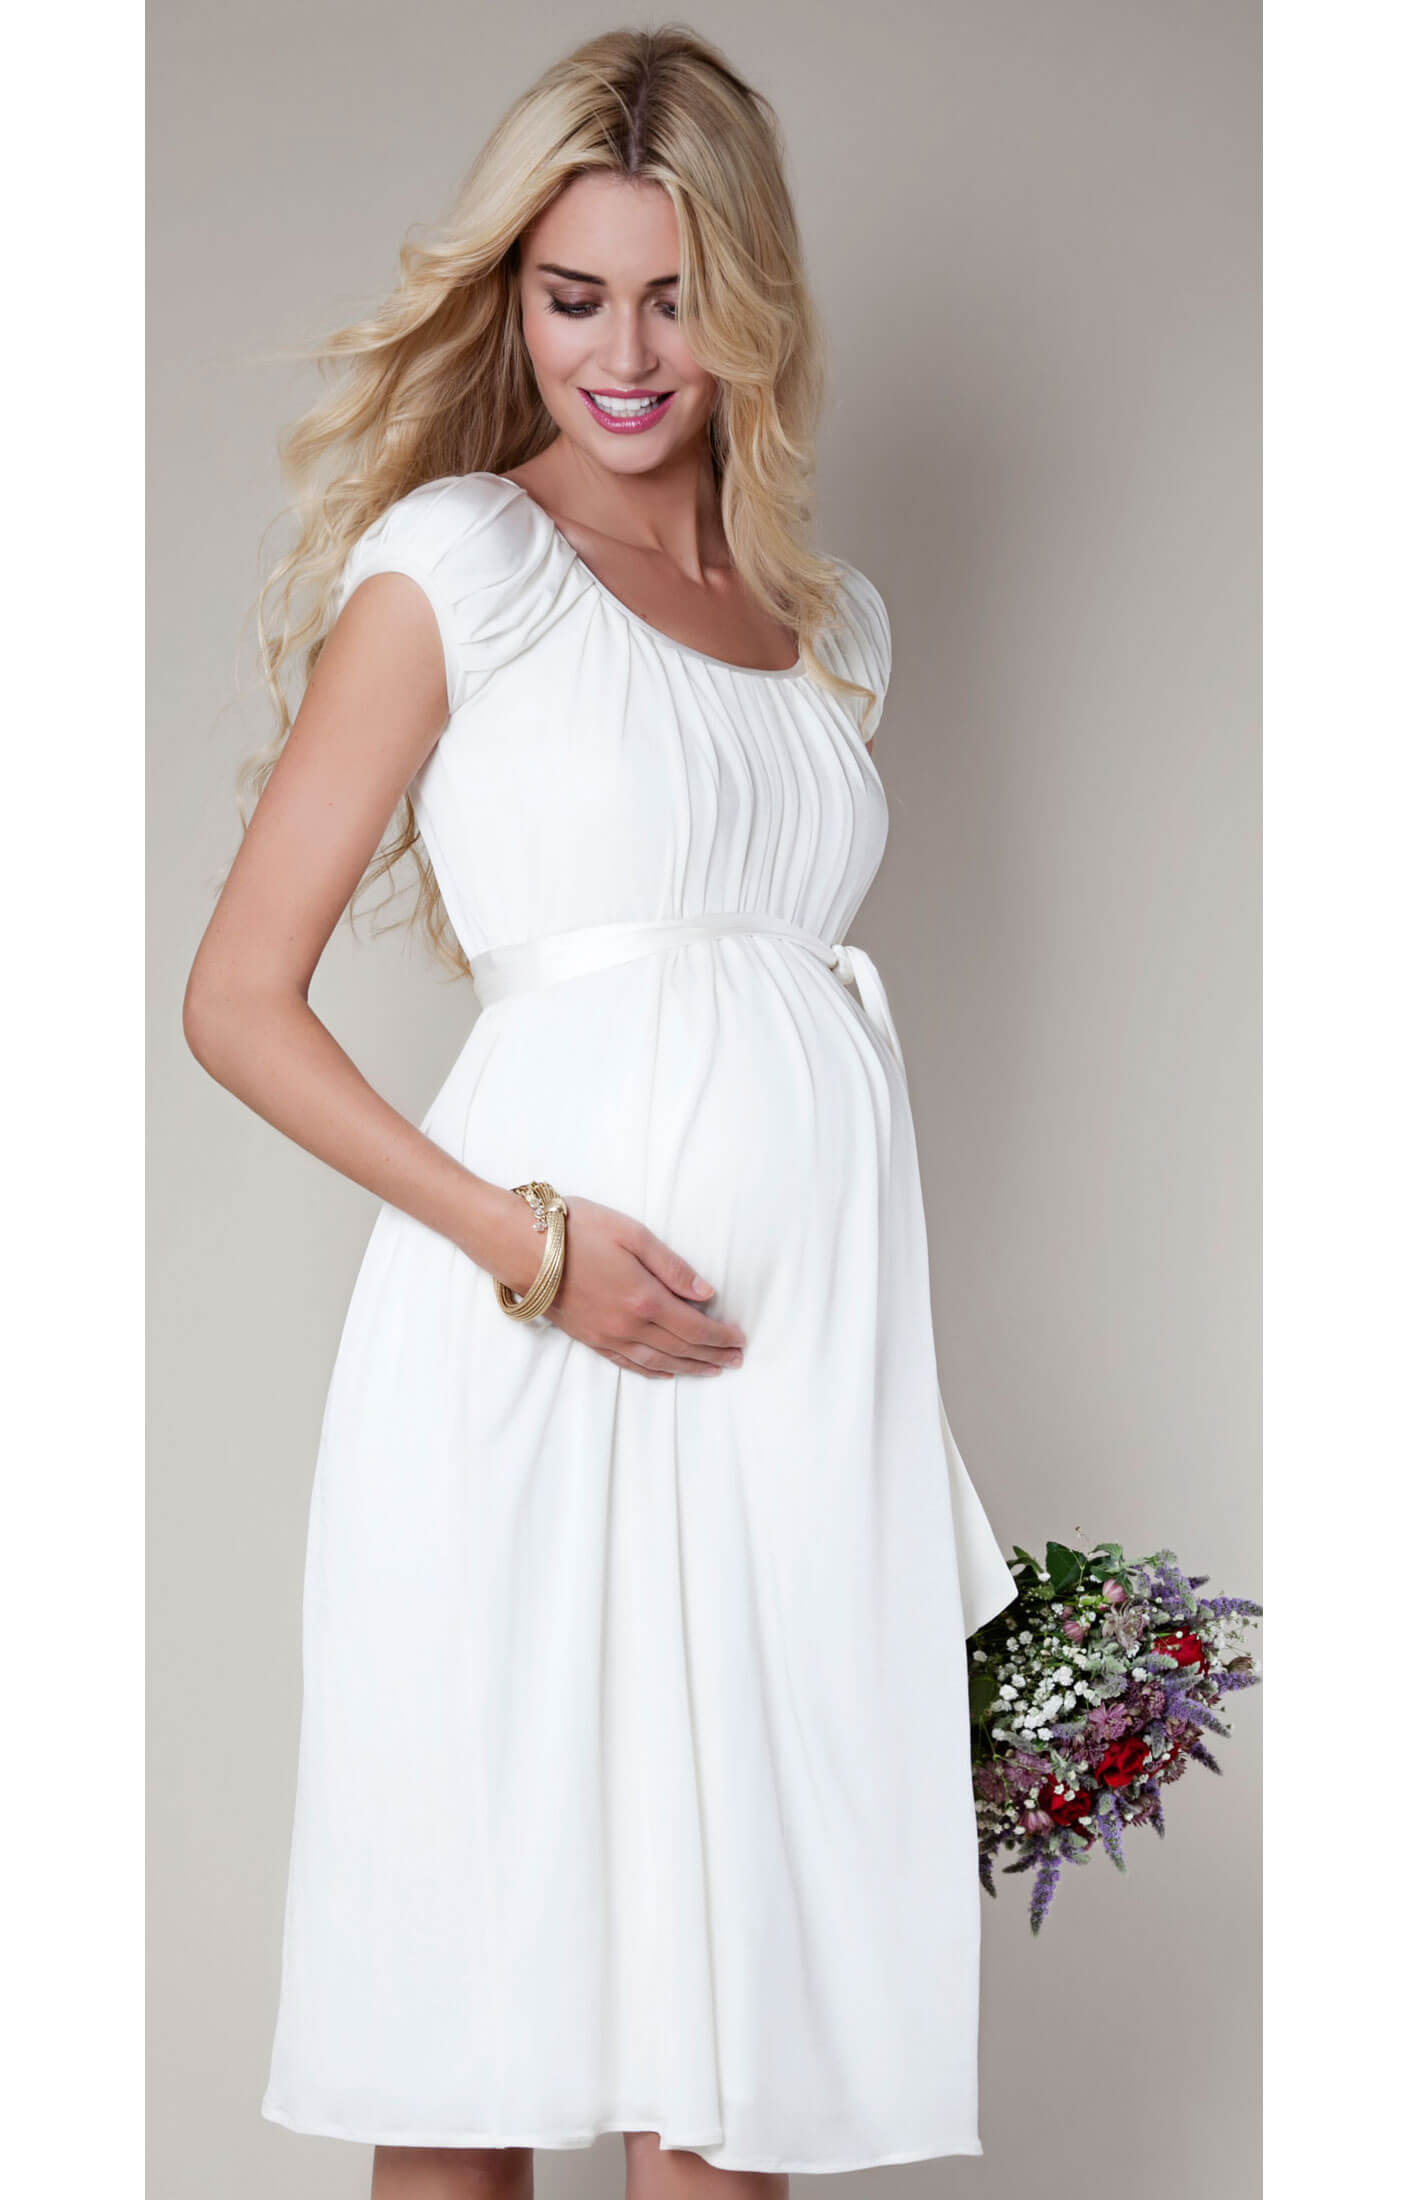 Claudia Maternity Gown Short (Ivory) maternity dresses for weddings Claudia Maternity Gown Short Ivory Maternity Wedding Dresses Evening Wear and Party Clothes by Tiffany Rose